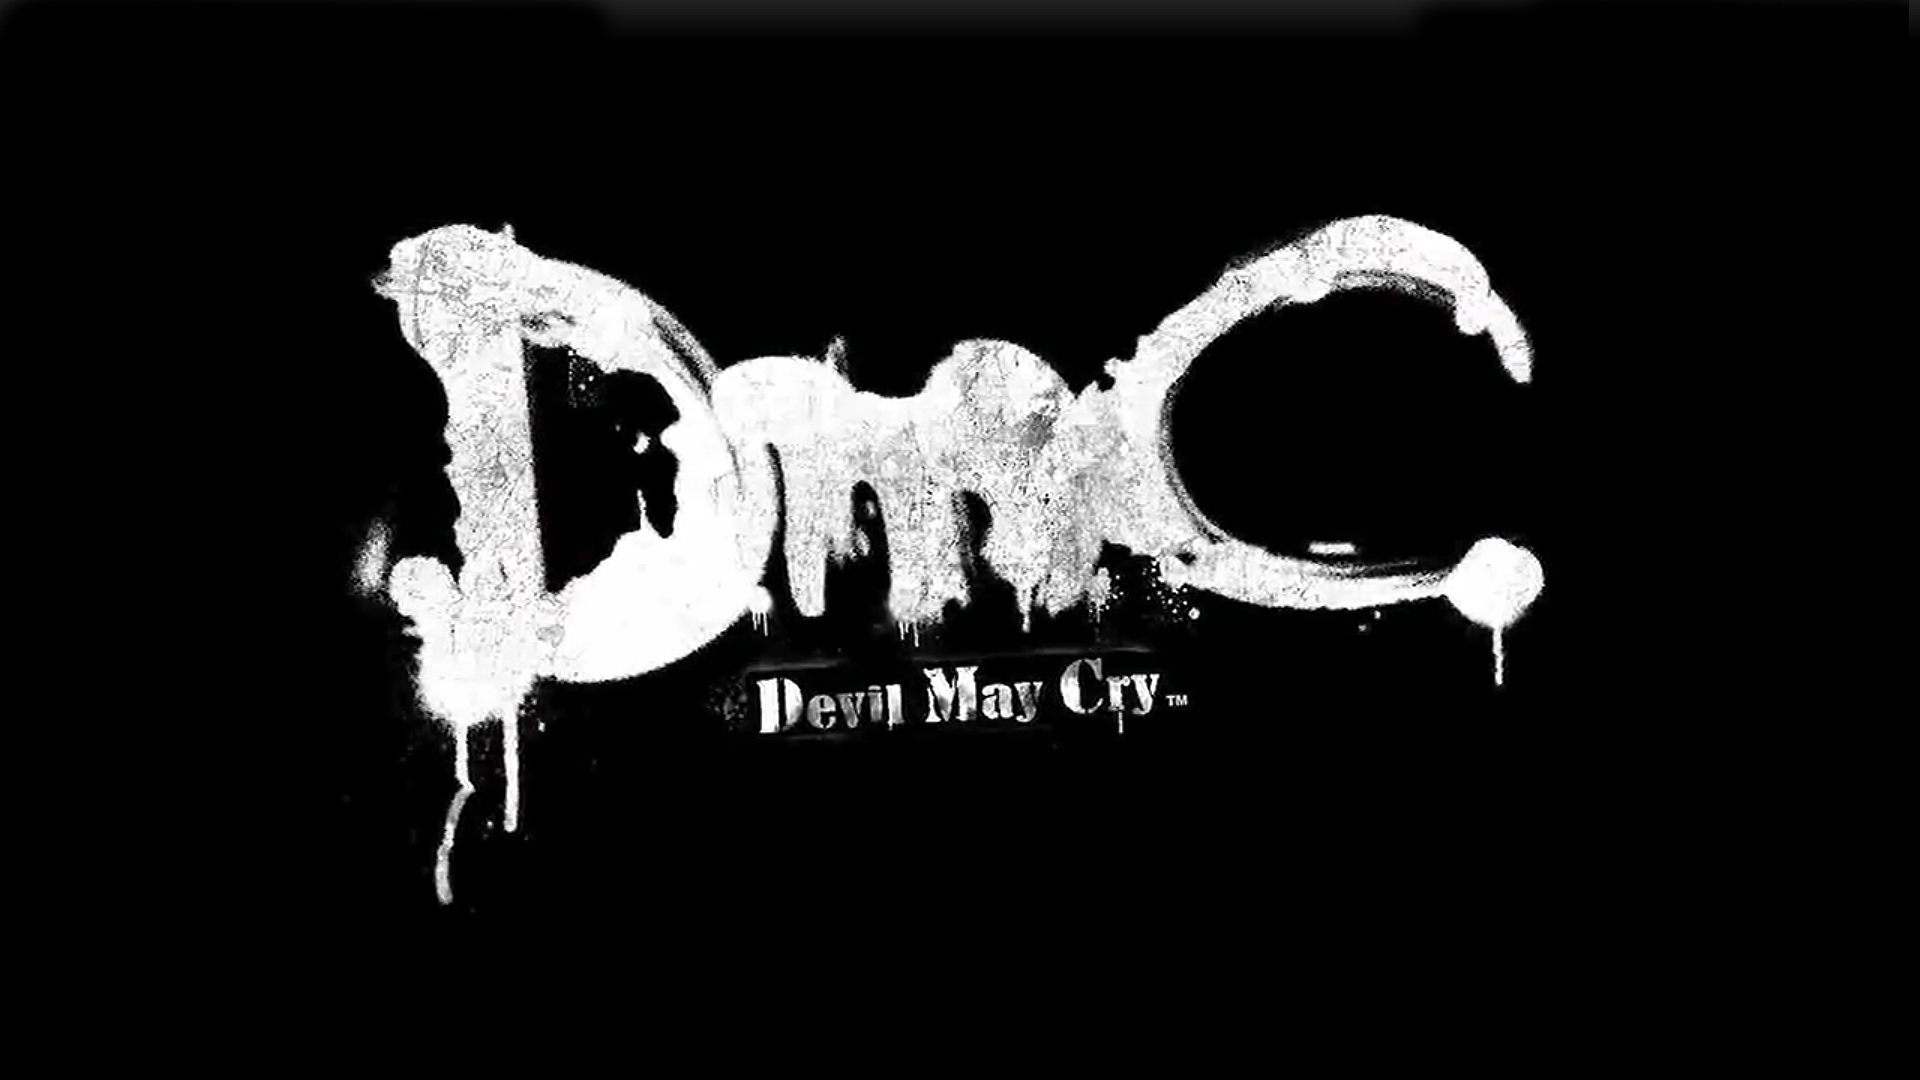 Devil may cry 5 wallpapers wallpaper cave dmc devil may cry wallpapers driverlayer search engine voltagebd Images